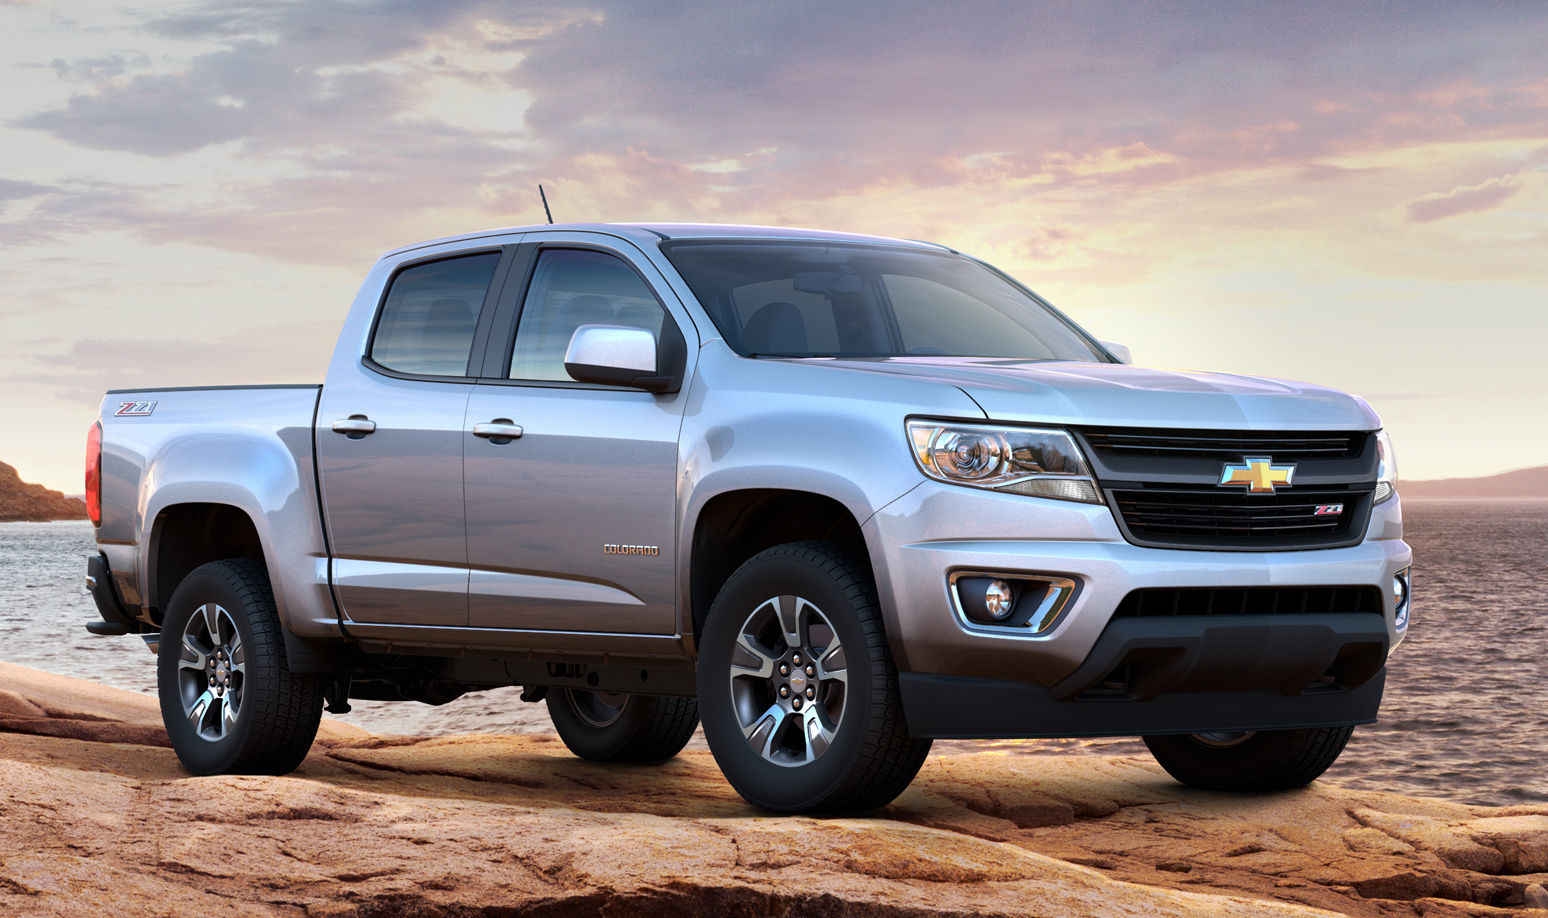 Used Chevy Colorado For Sale >> Get Truckin With A Used Chevy Colorado Pickup Chevrolet Of